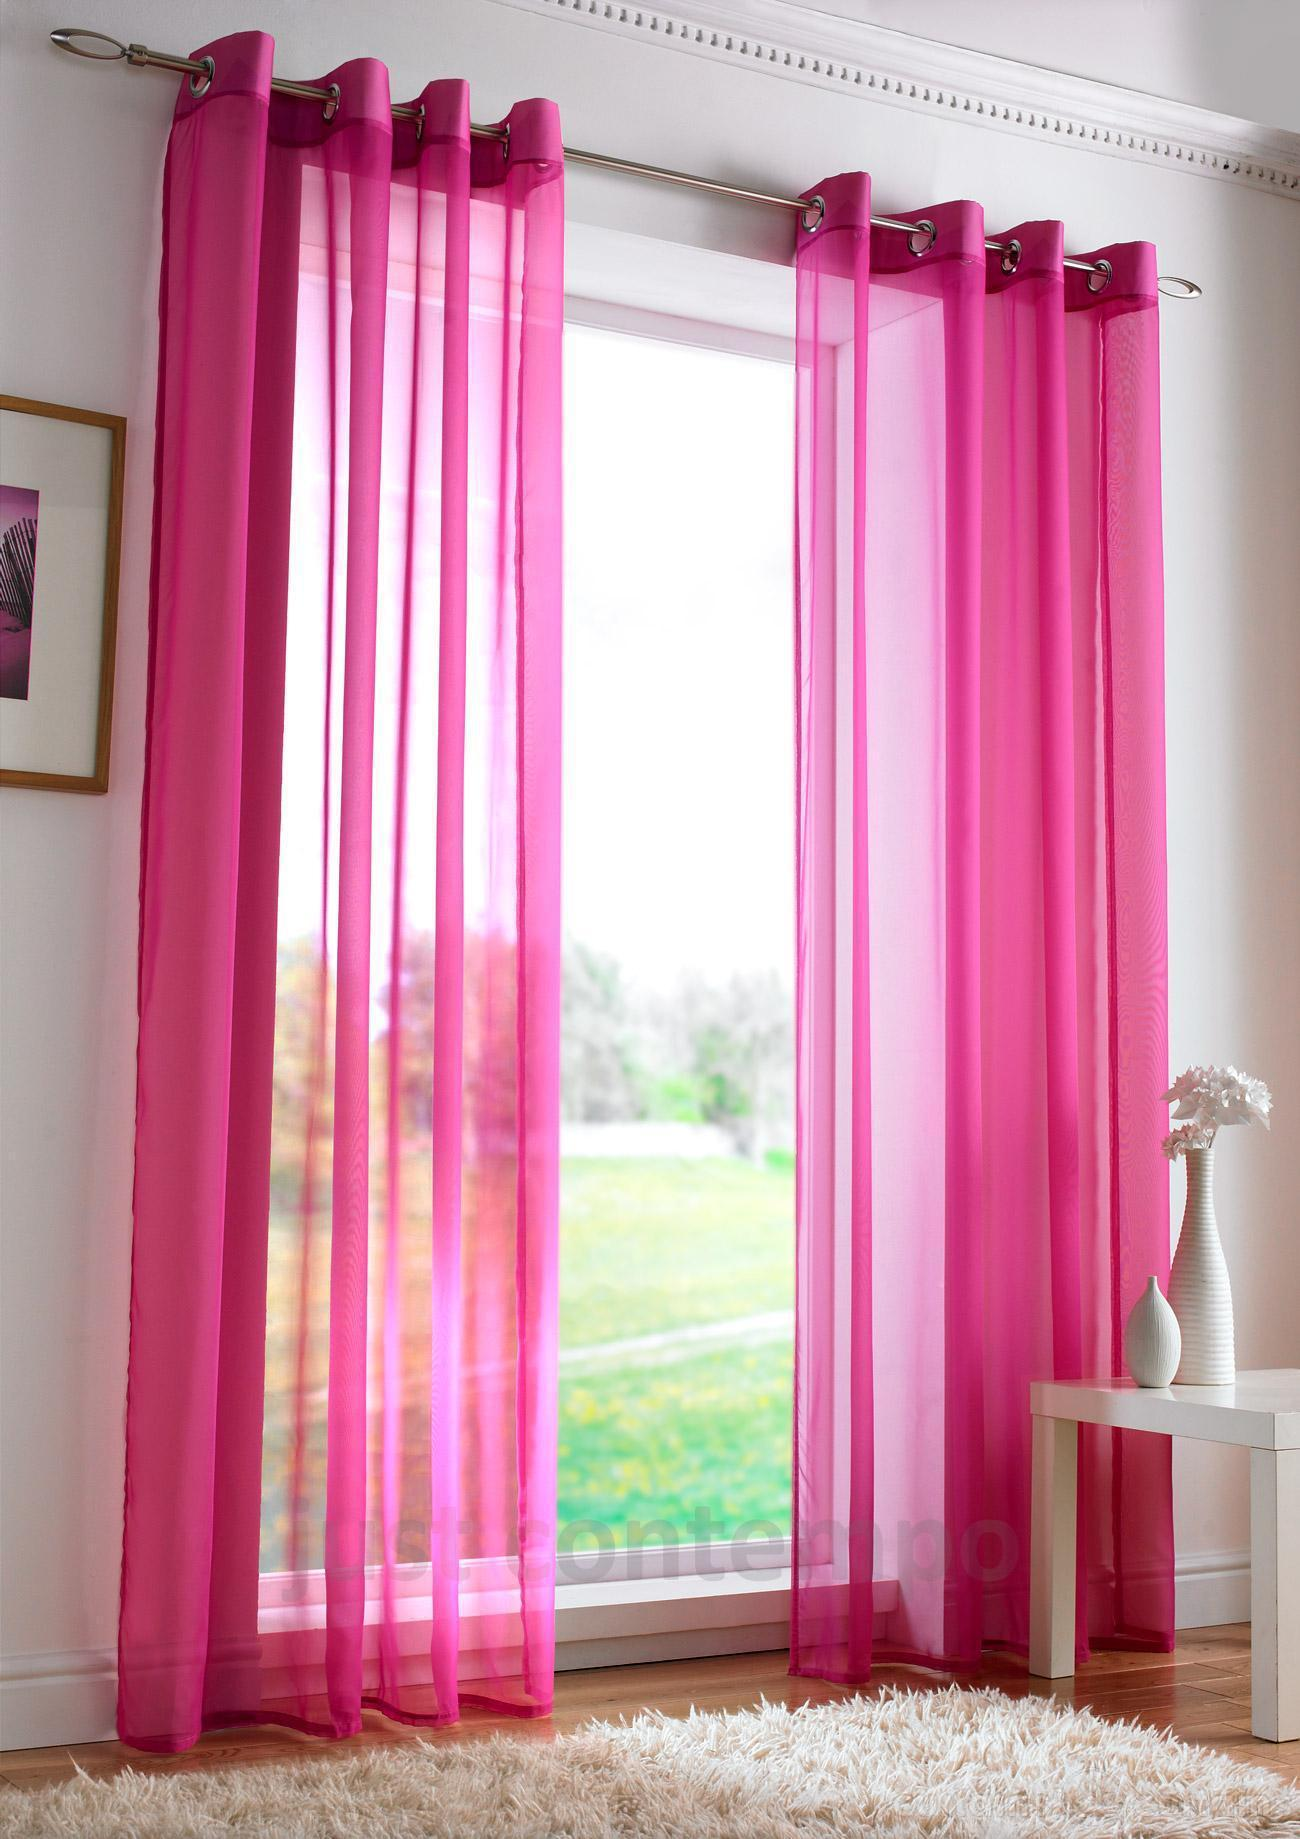 Pink sheer curtains